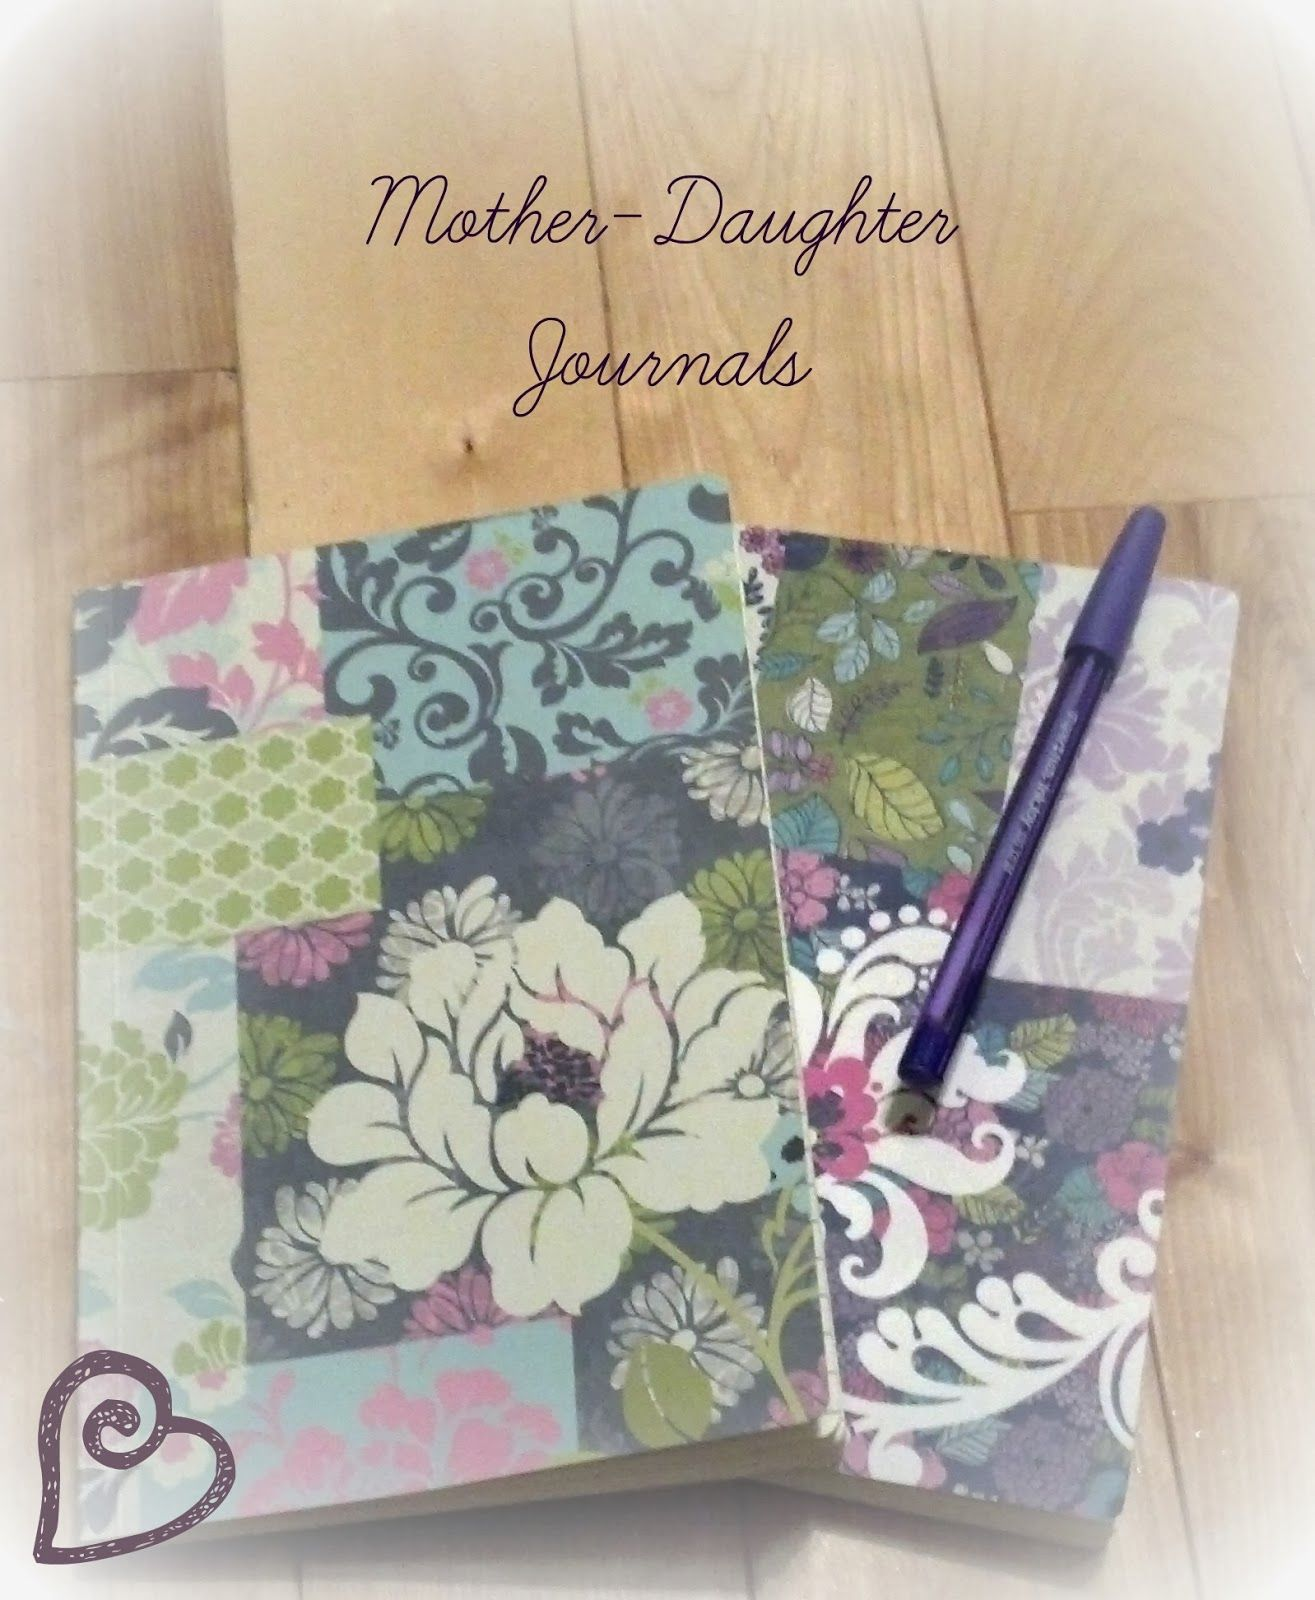 Mother Daughter Journals To Keep Communication Open With